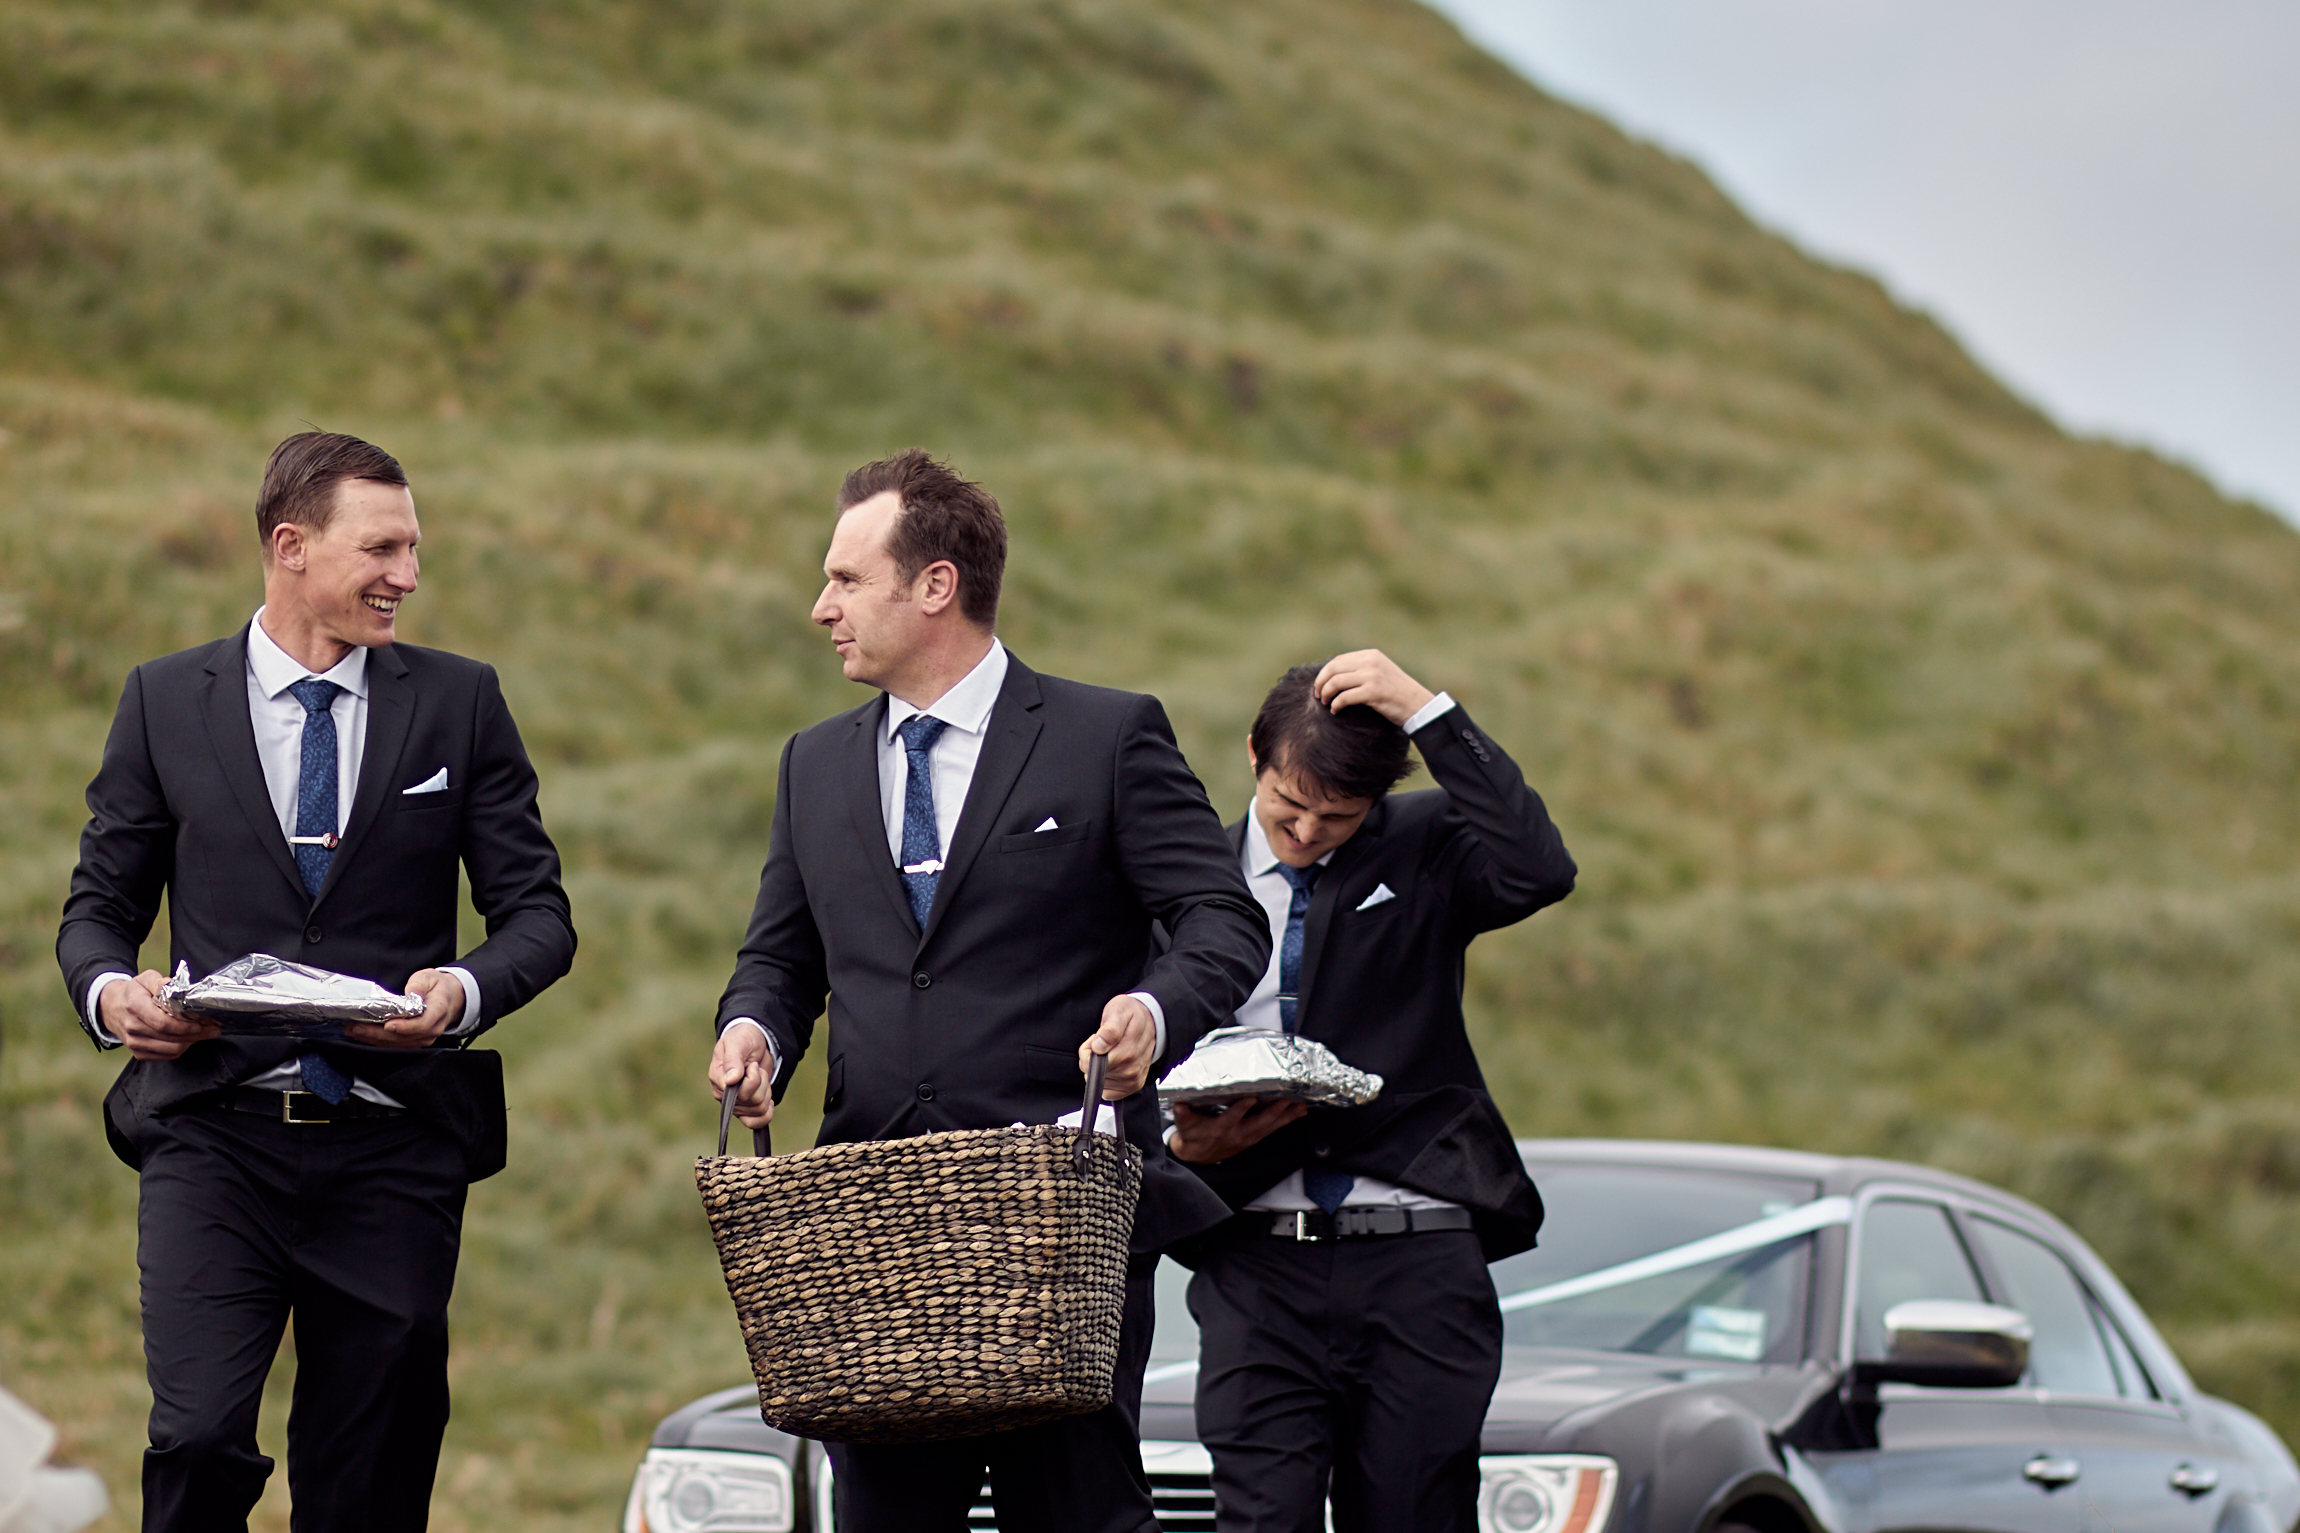 groomsmen carrying baskets